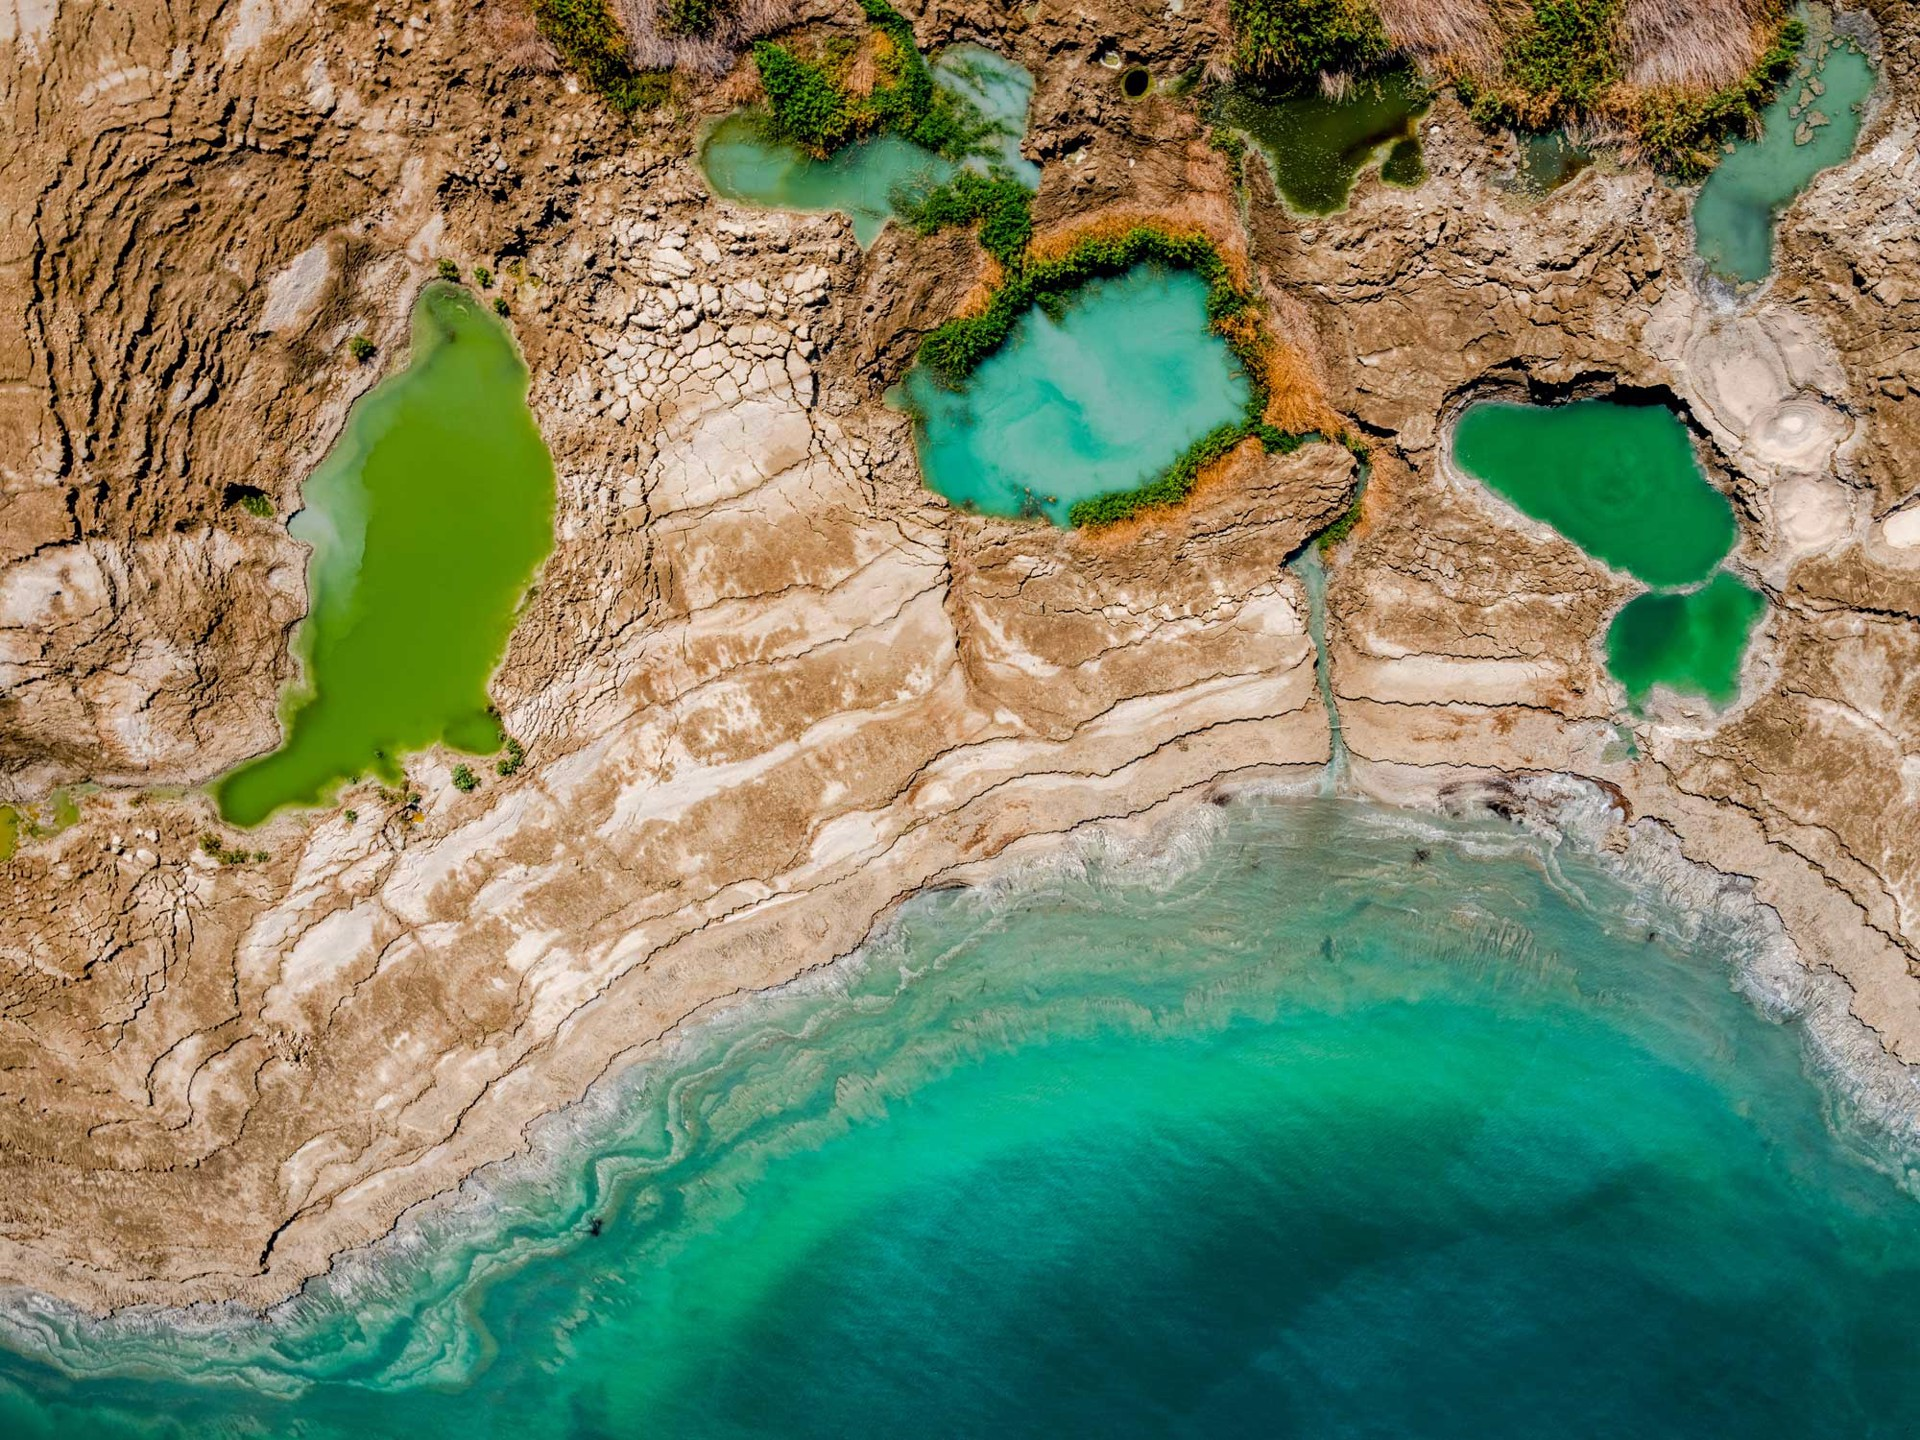 Pools of Life, Dead Sea-Israel by Dinesh Boaz